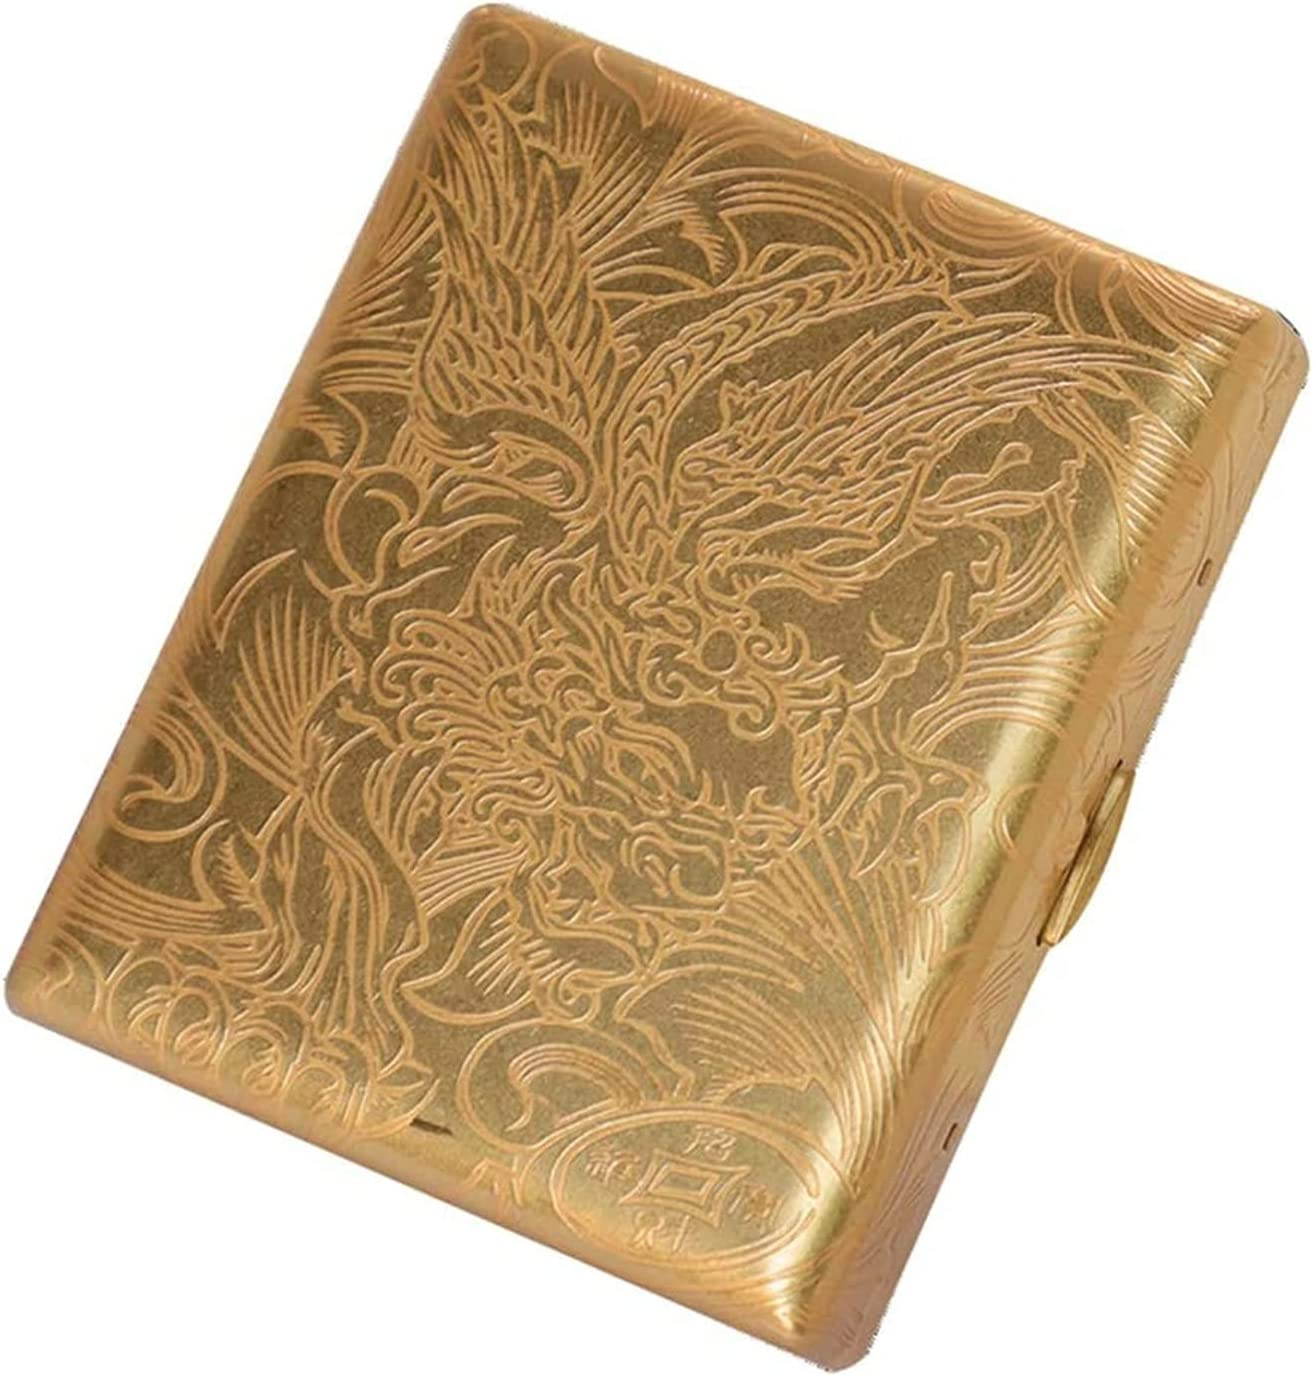 New Orleans Mall ZXNRTU Pure Shipping included Copper Metal Cigarette Holder Case Box Large Capacit